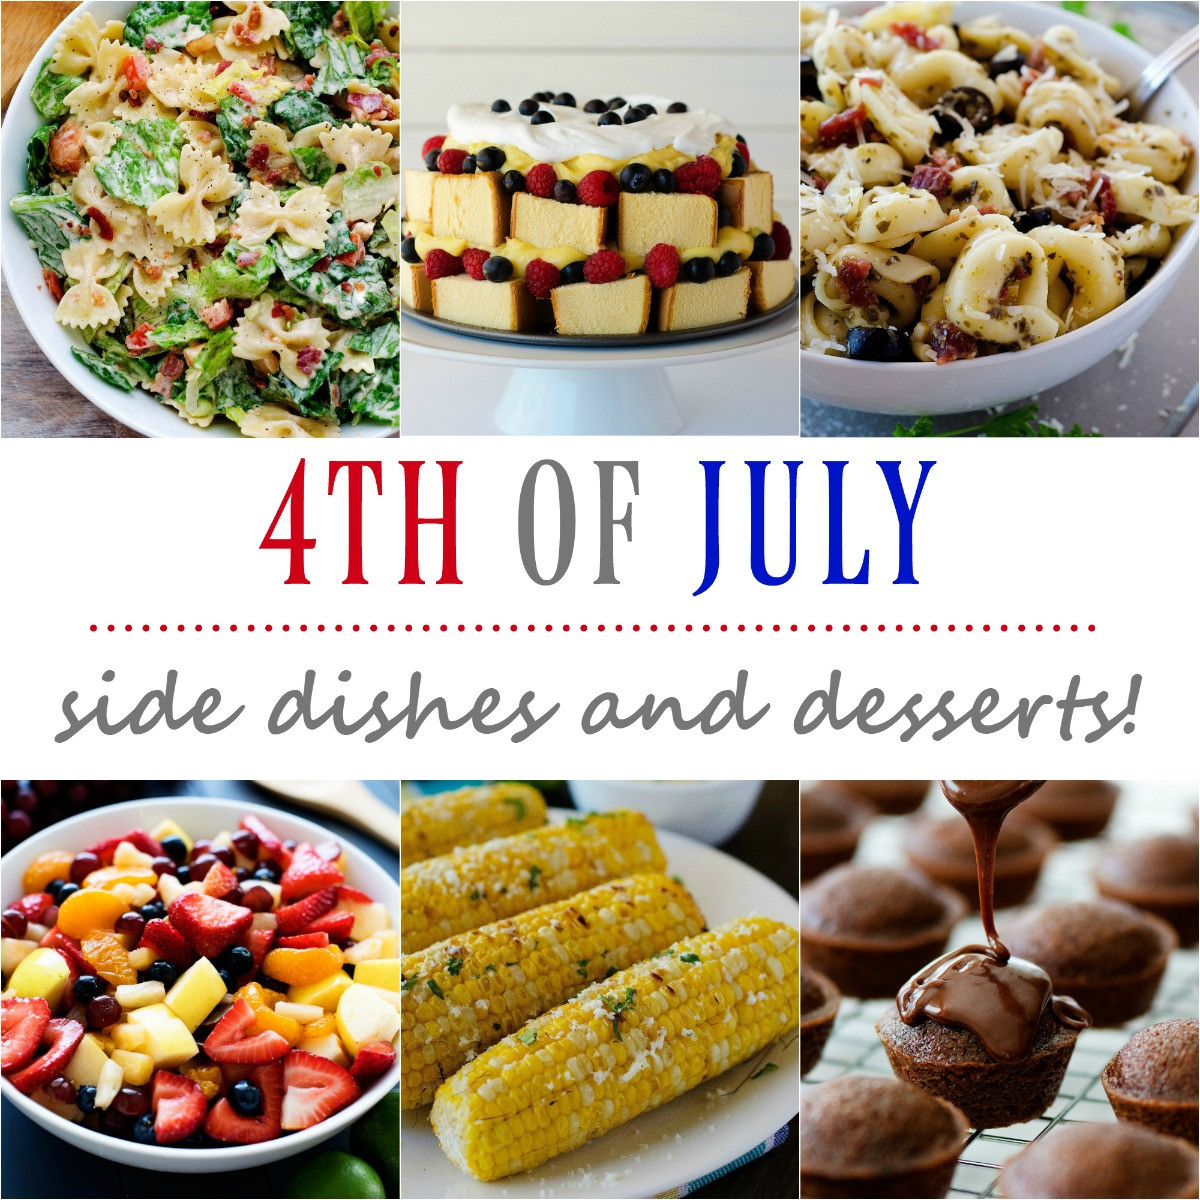 Fourth Of July Side Dishes  4th of July side dishes and desserts Life In The Lofthouse